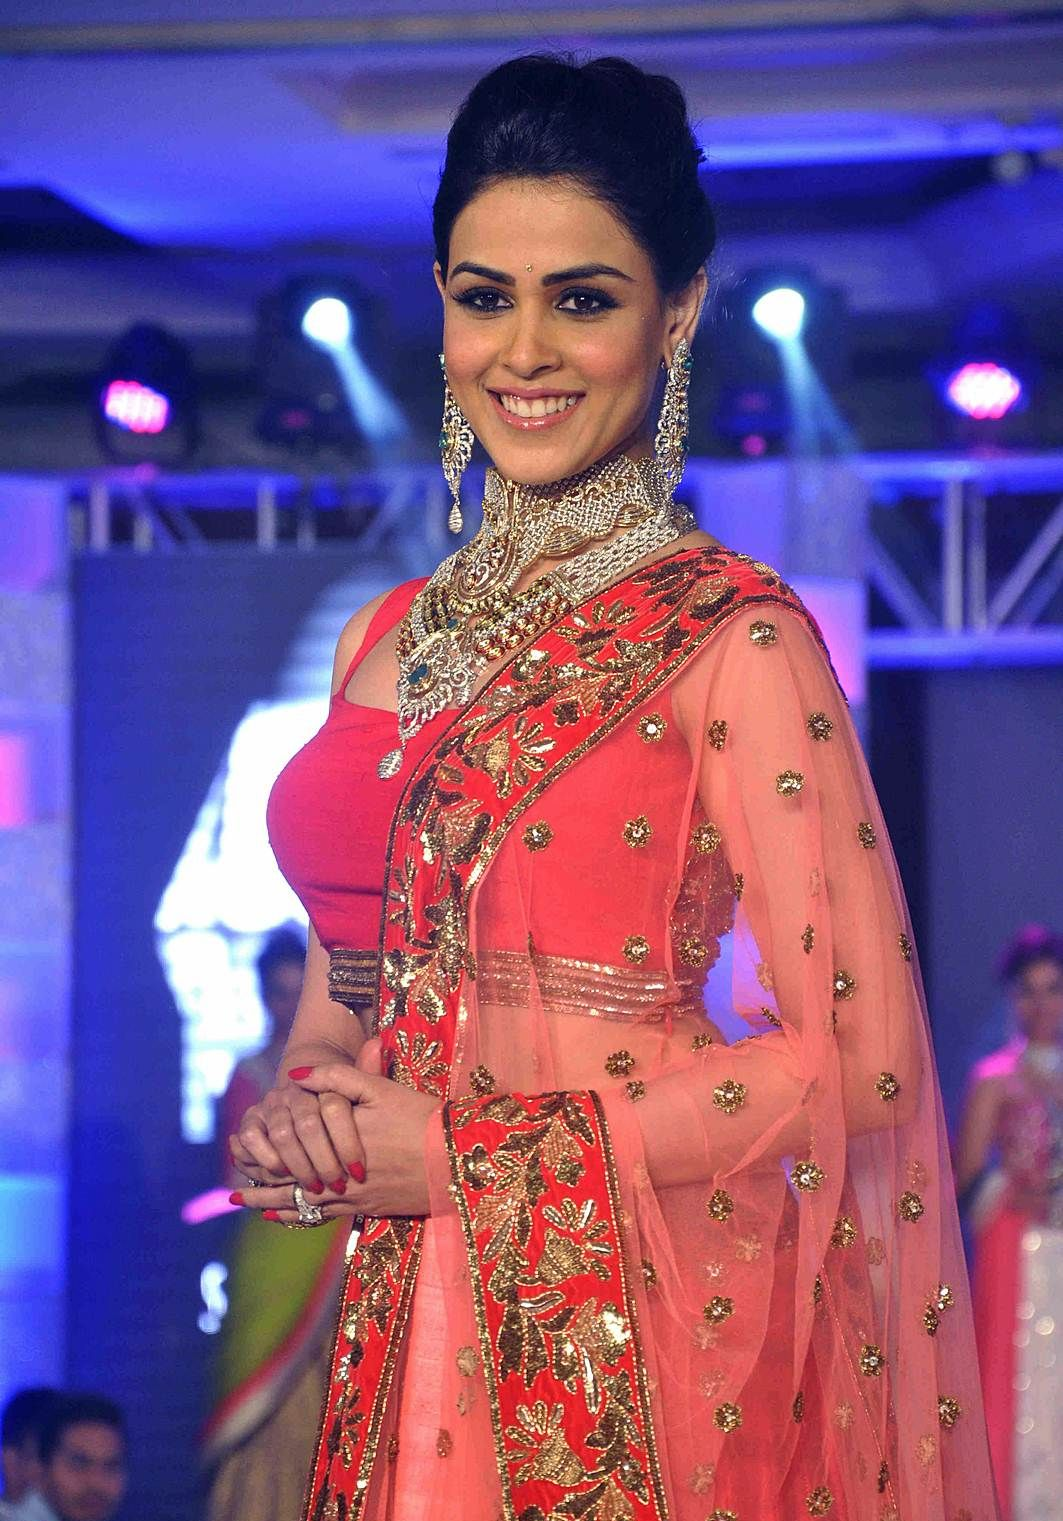 Genelia D'souza HD Photos & Wallpapers Free Download